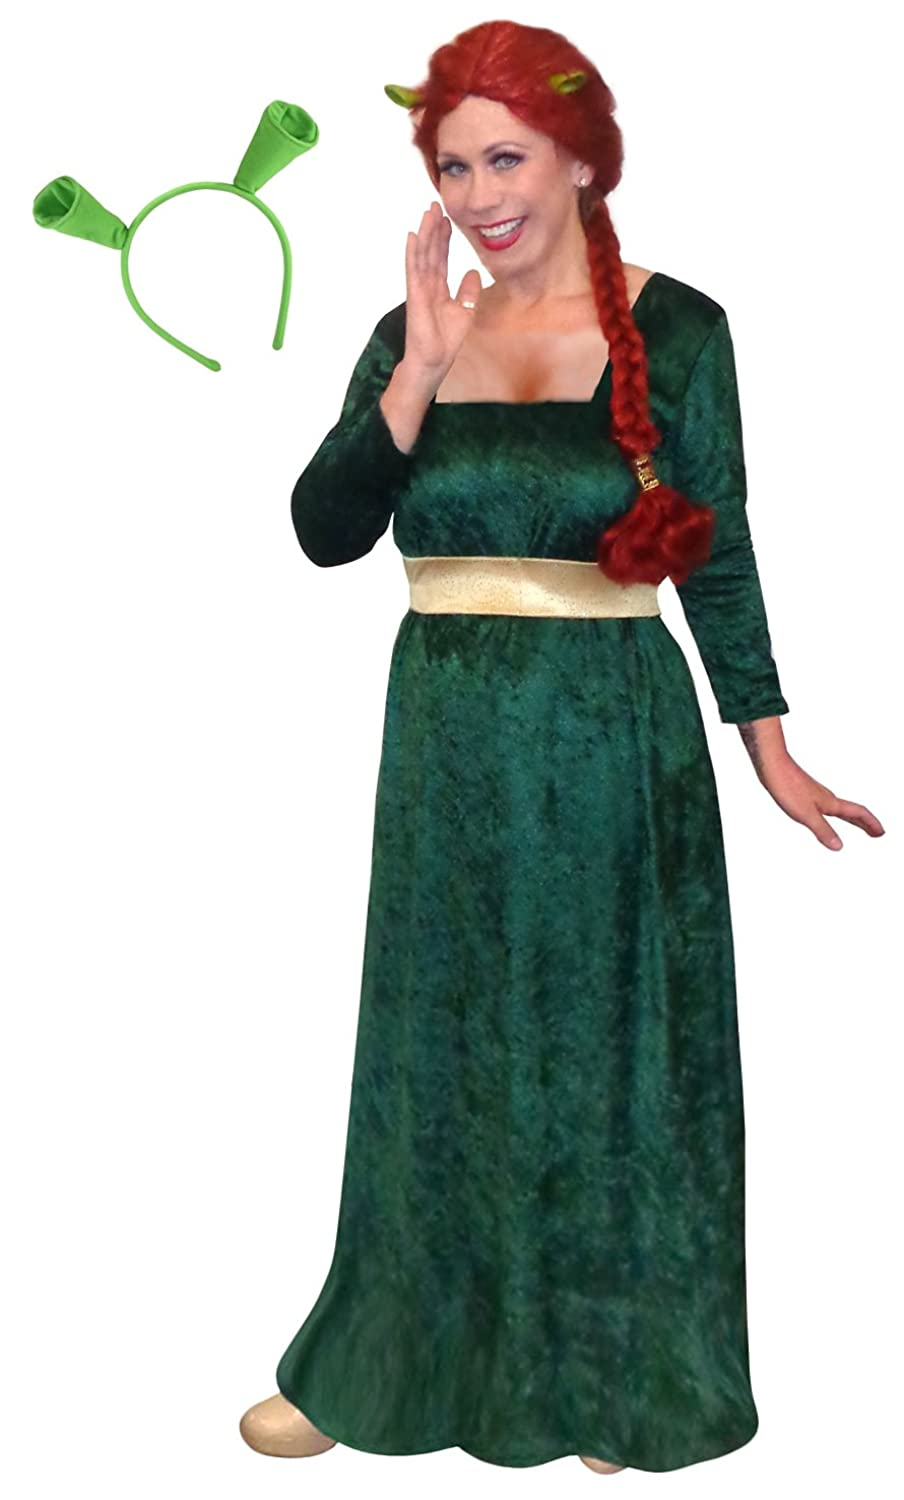 amazoncom womens princess fiona shrek plus size supersize halloween costume dress ears clothing - Green Halloween Dress